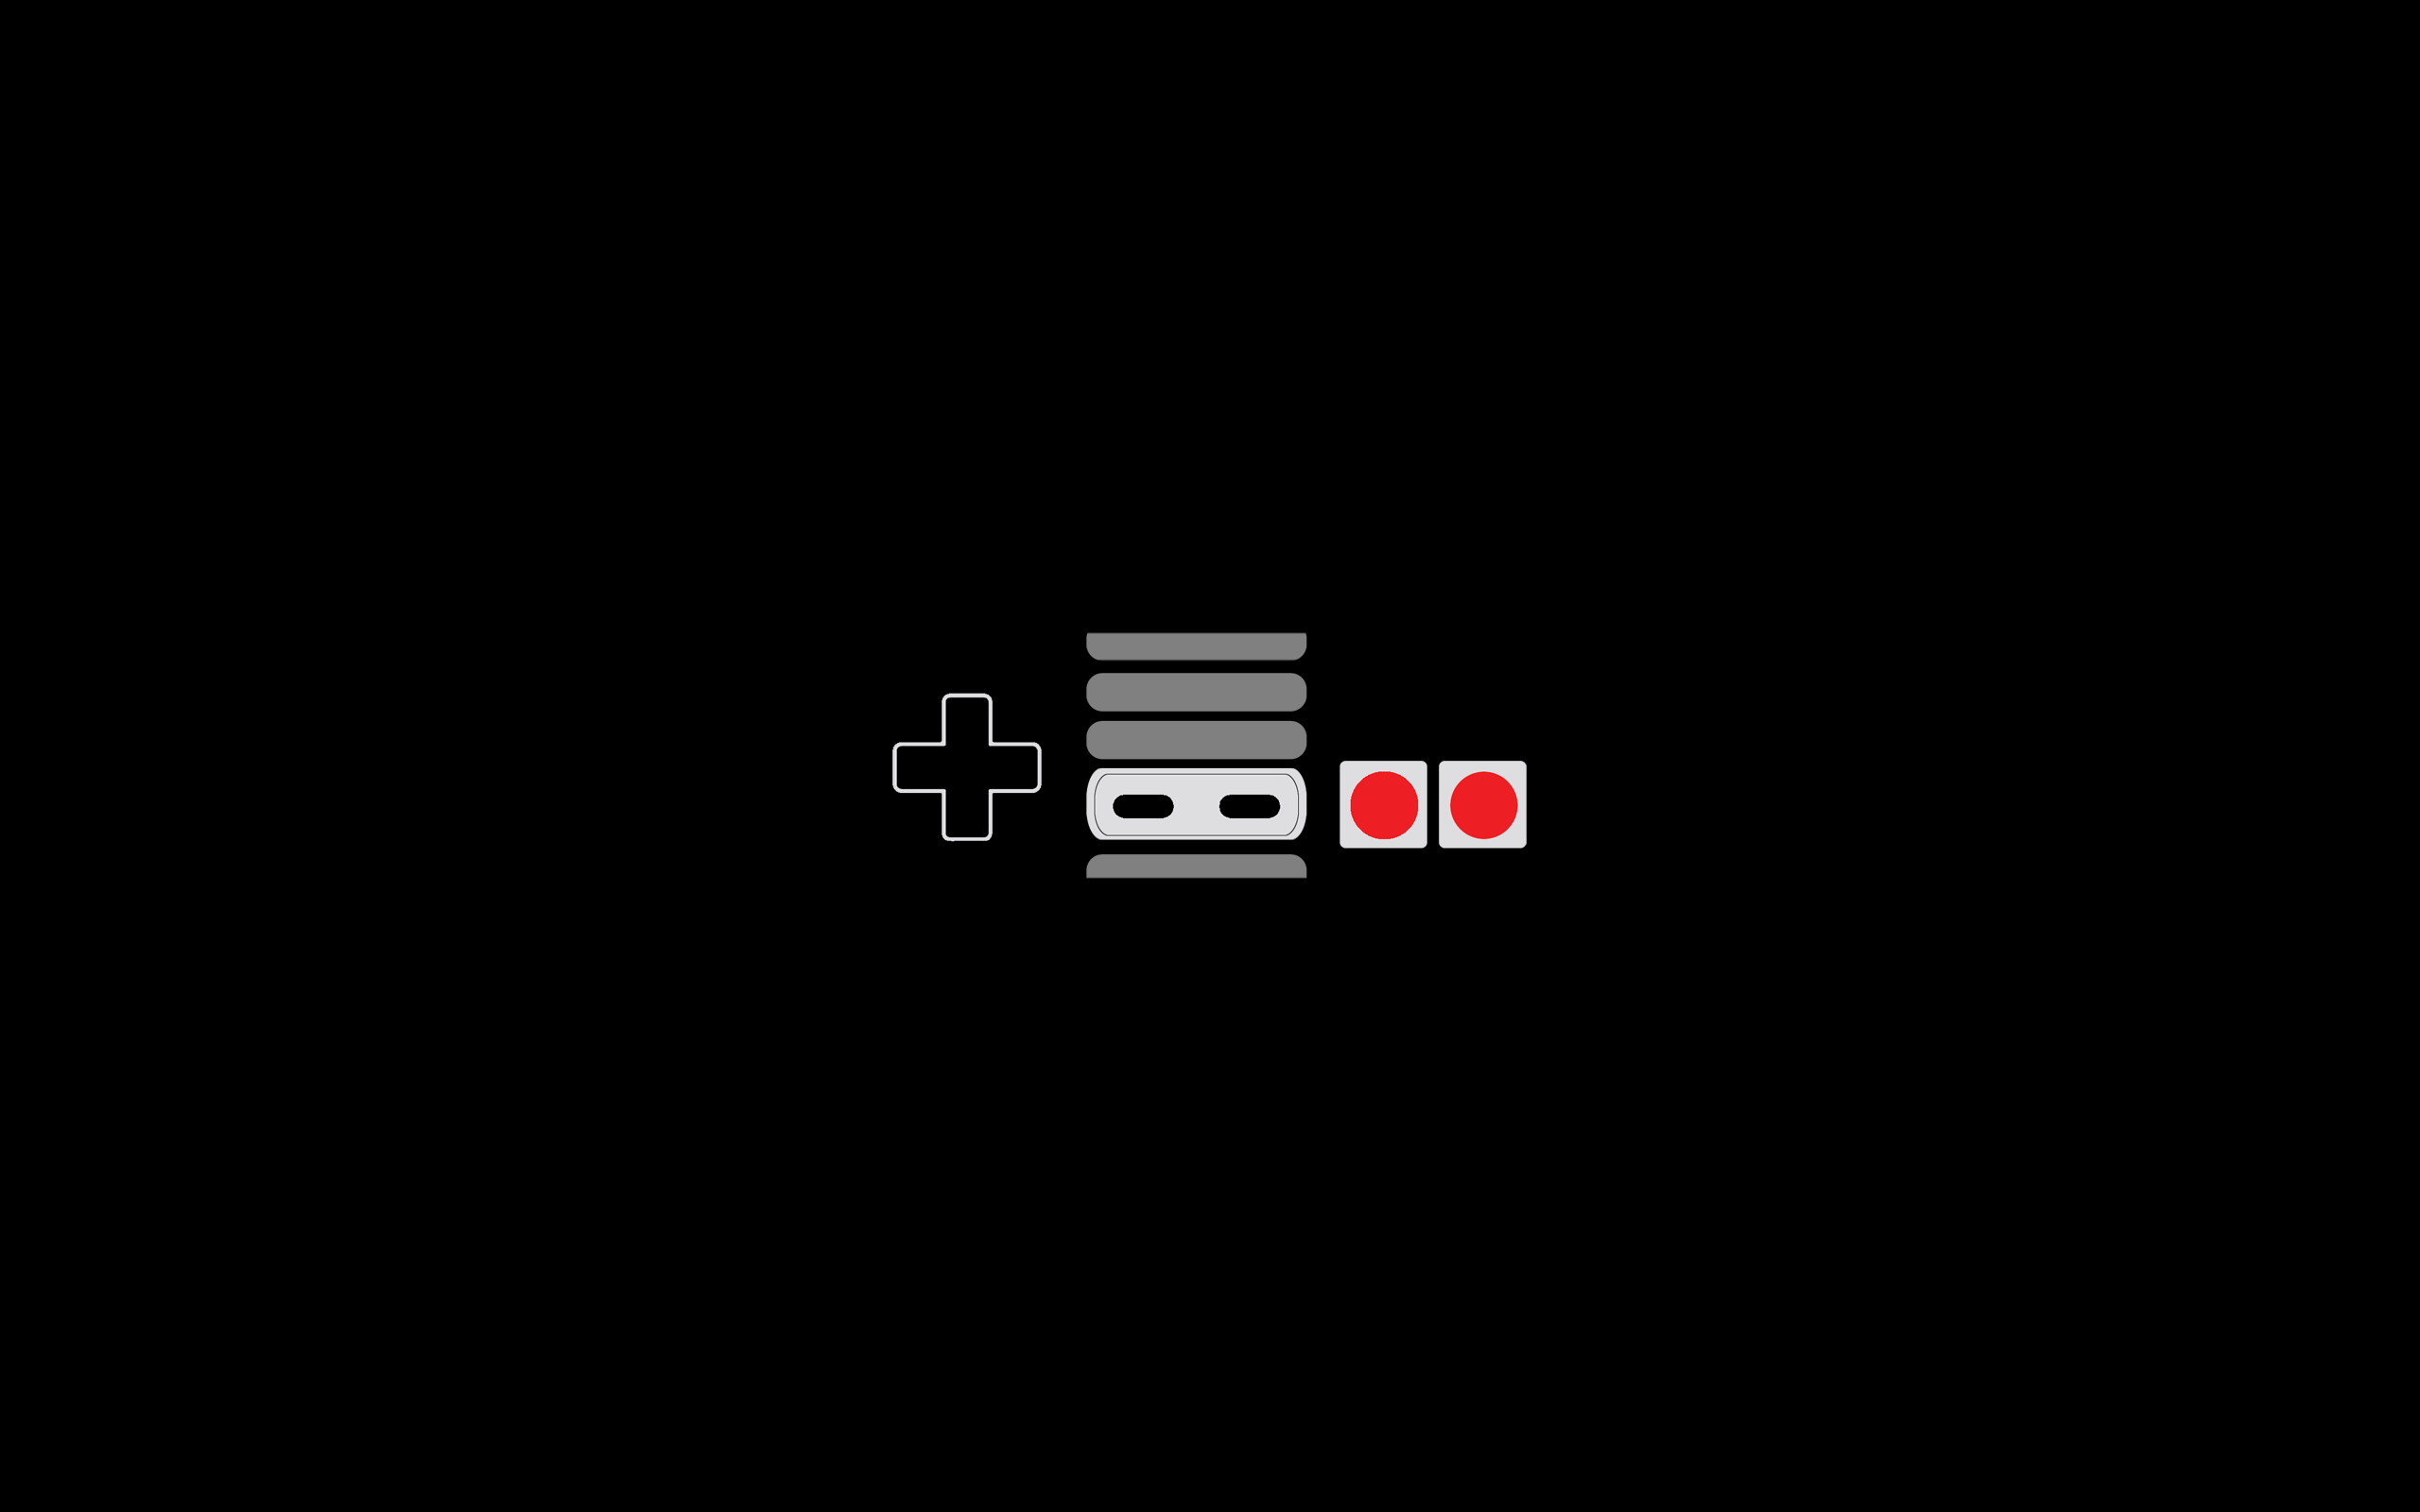 Wallpapers For Nintendo Controller Wallpaper 2560x1600